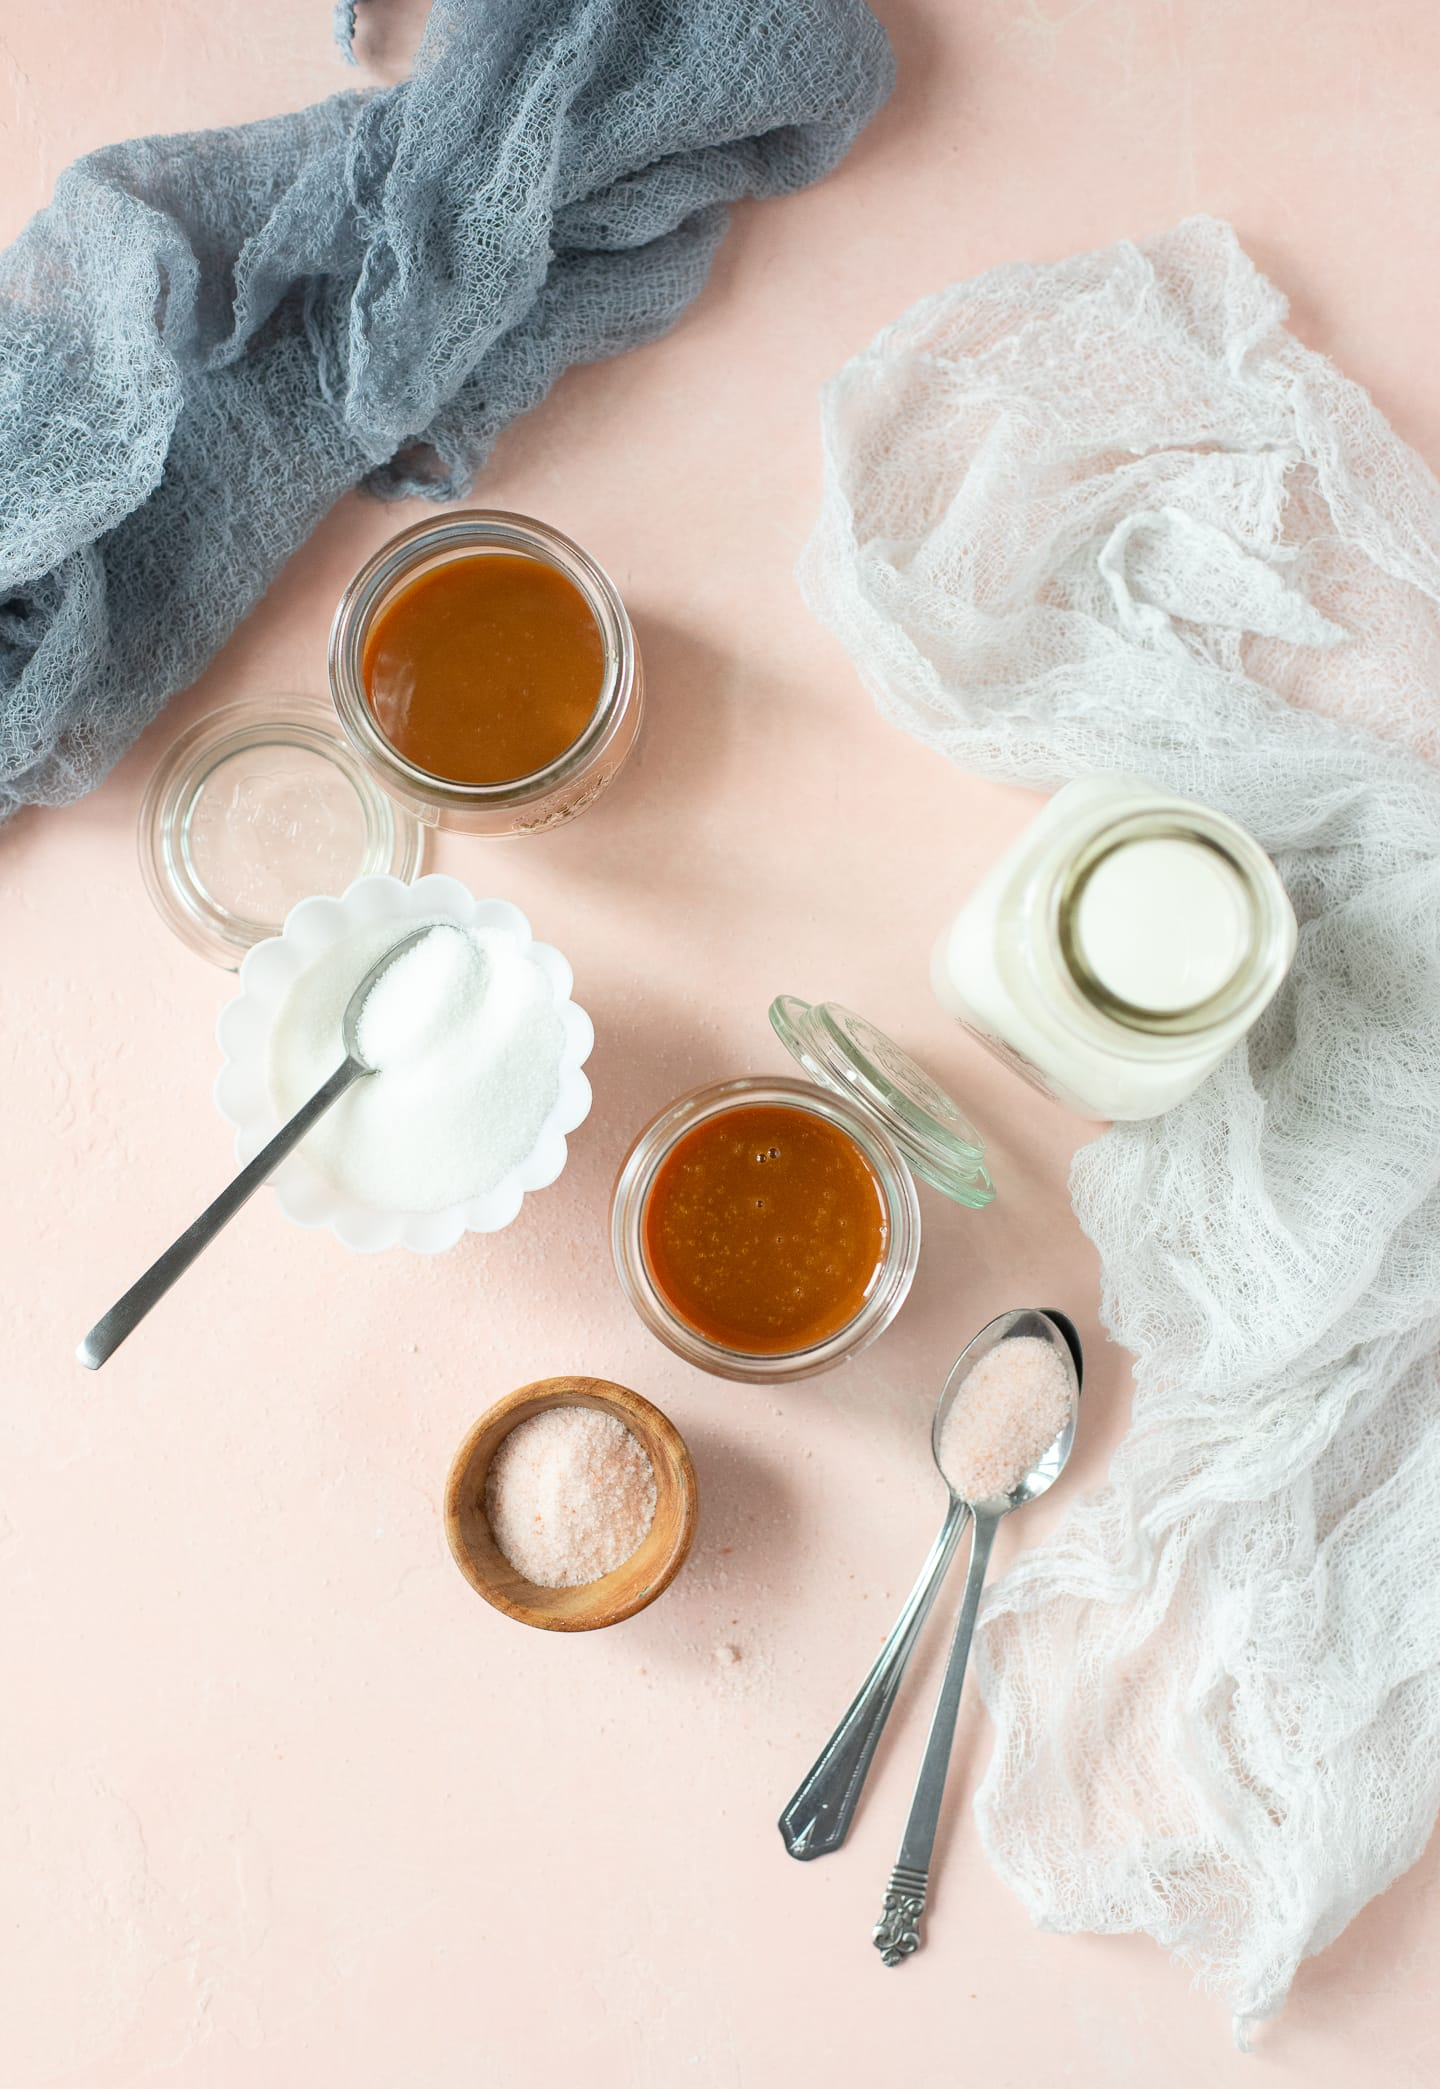 Overhead view of two jars of caramel sauce with milk, sugar, and sea salt surrounding them.